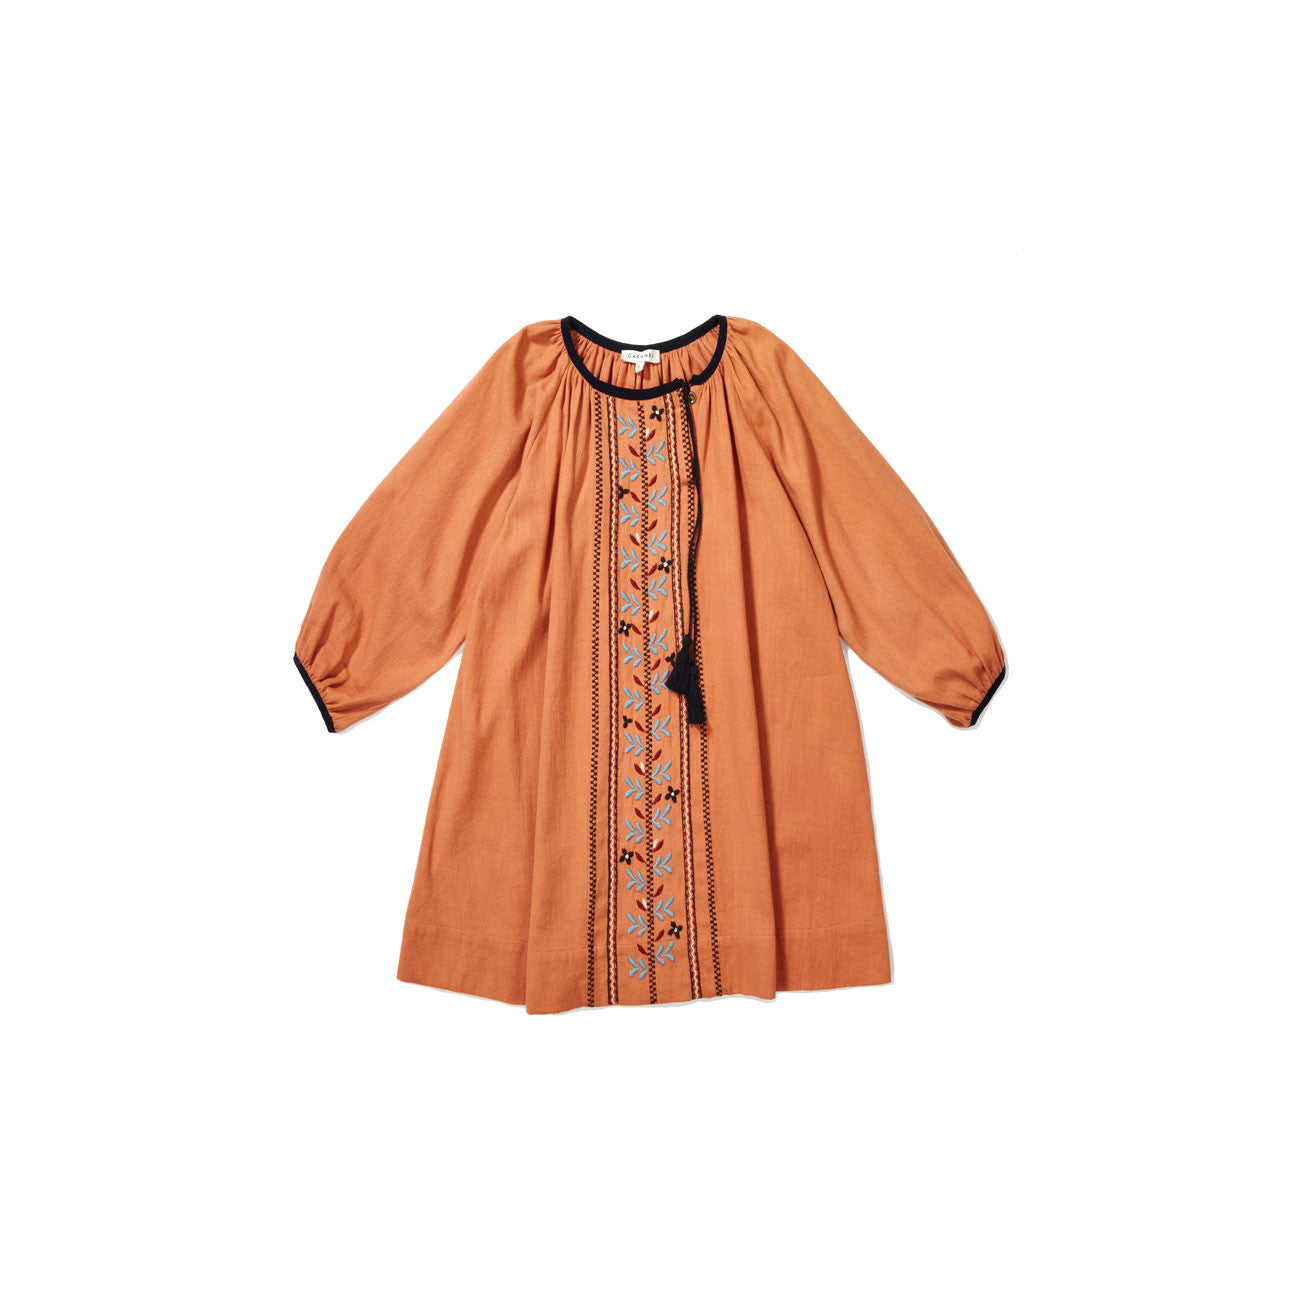 Caramel Persimmon Embroidered Dress - Ladida